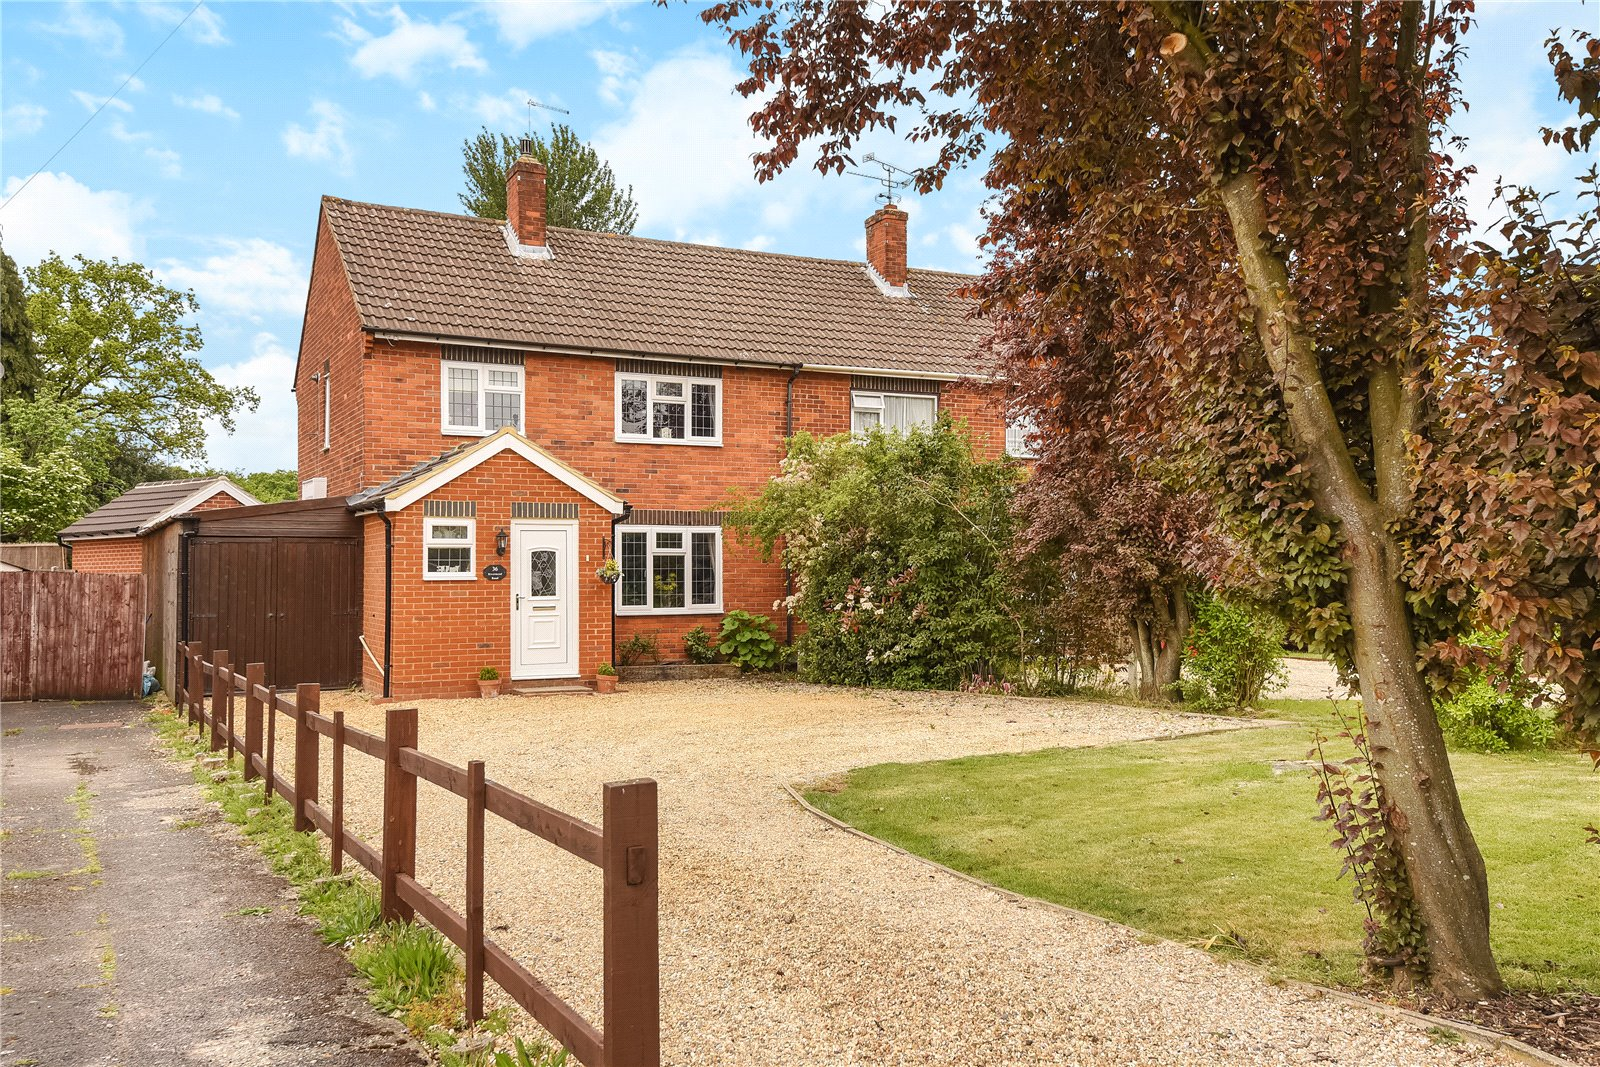 3 Bedrooms Semi Detached House for sale in Rivermead Road, Camberley, Surrey, GU15